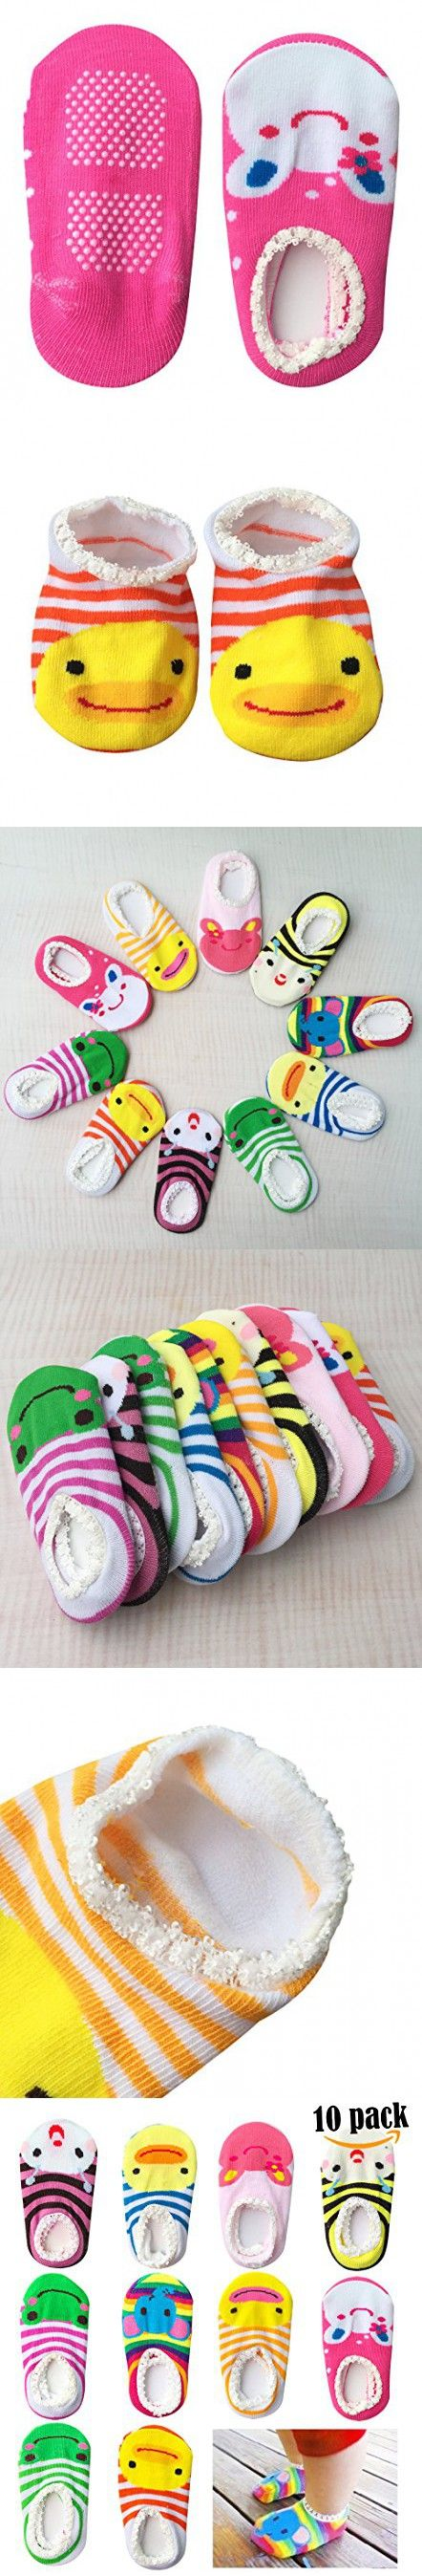 Bassion 10 Pairs Random Colors Non Slip Baby Socks For 6 18 Months